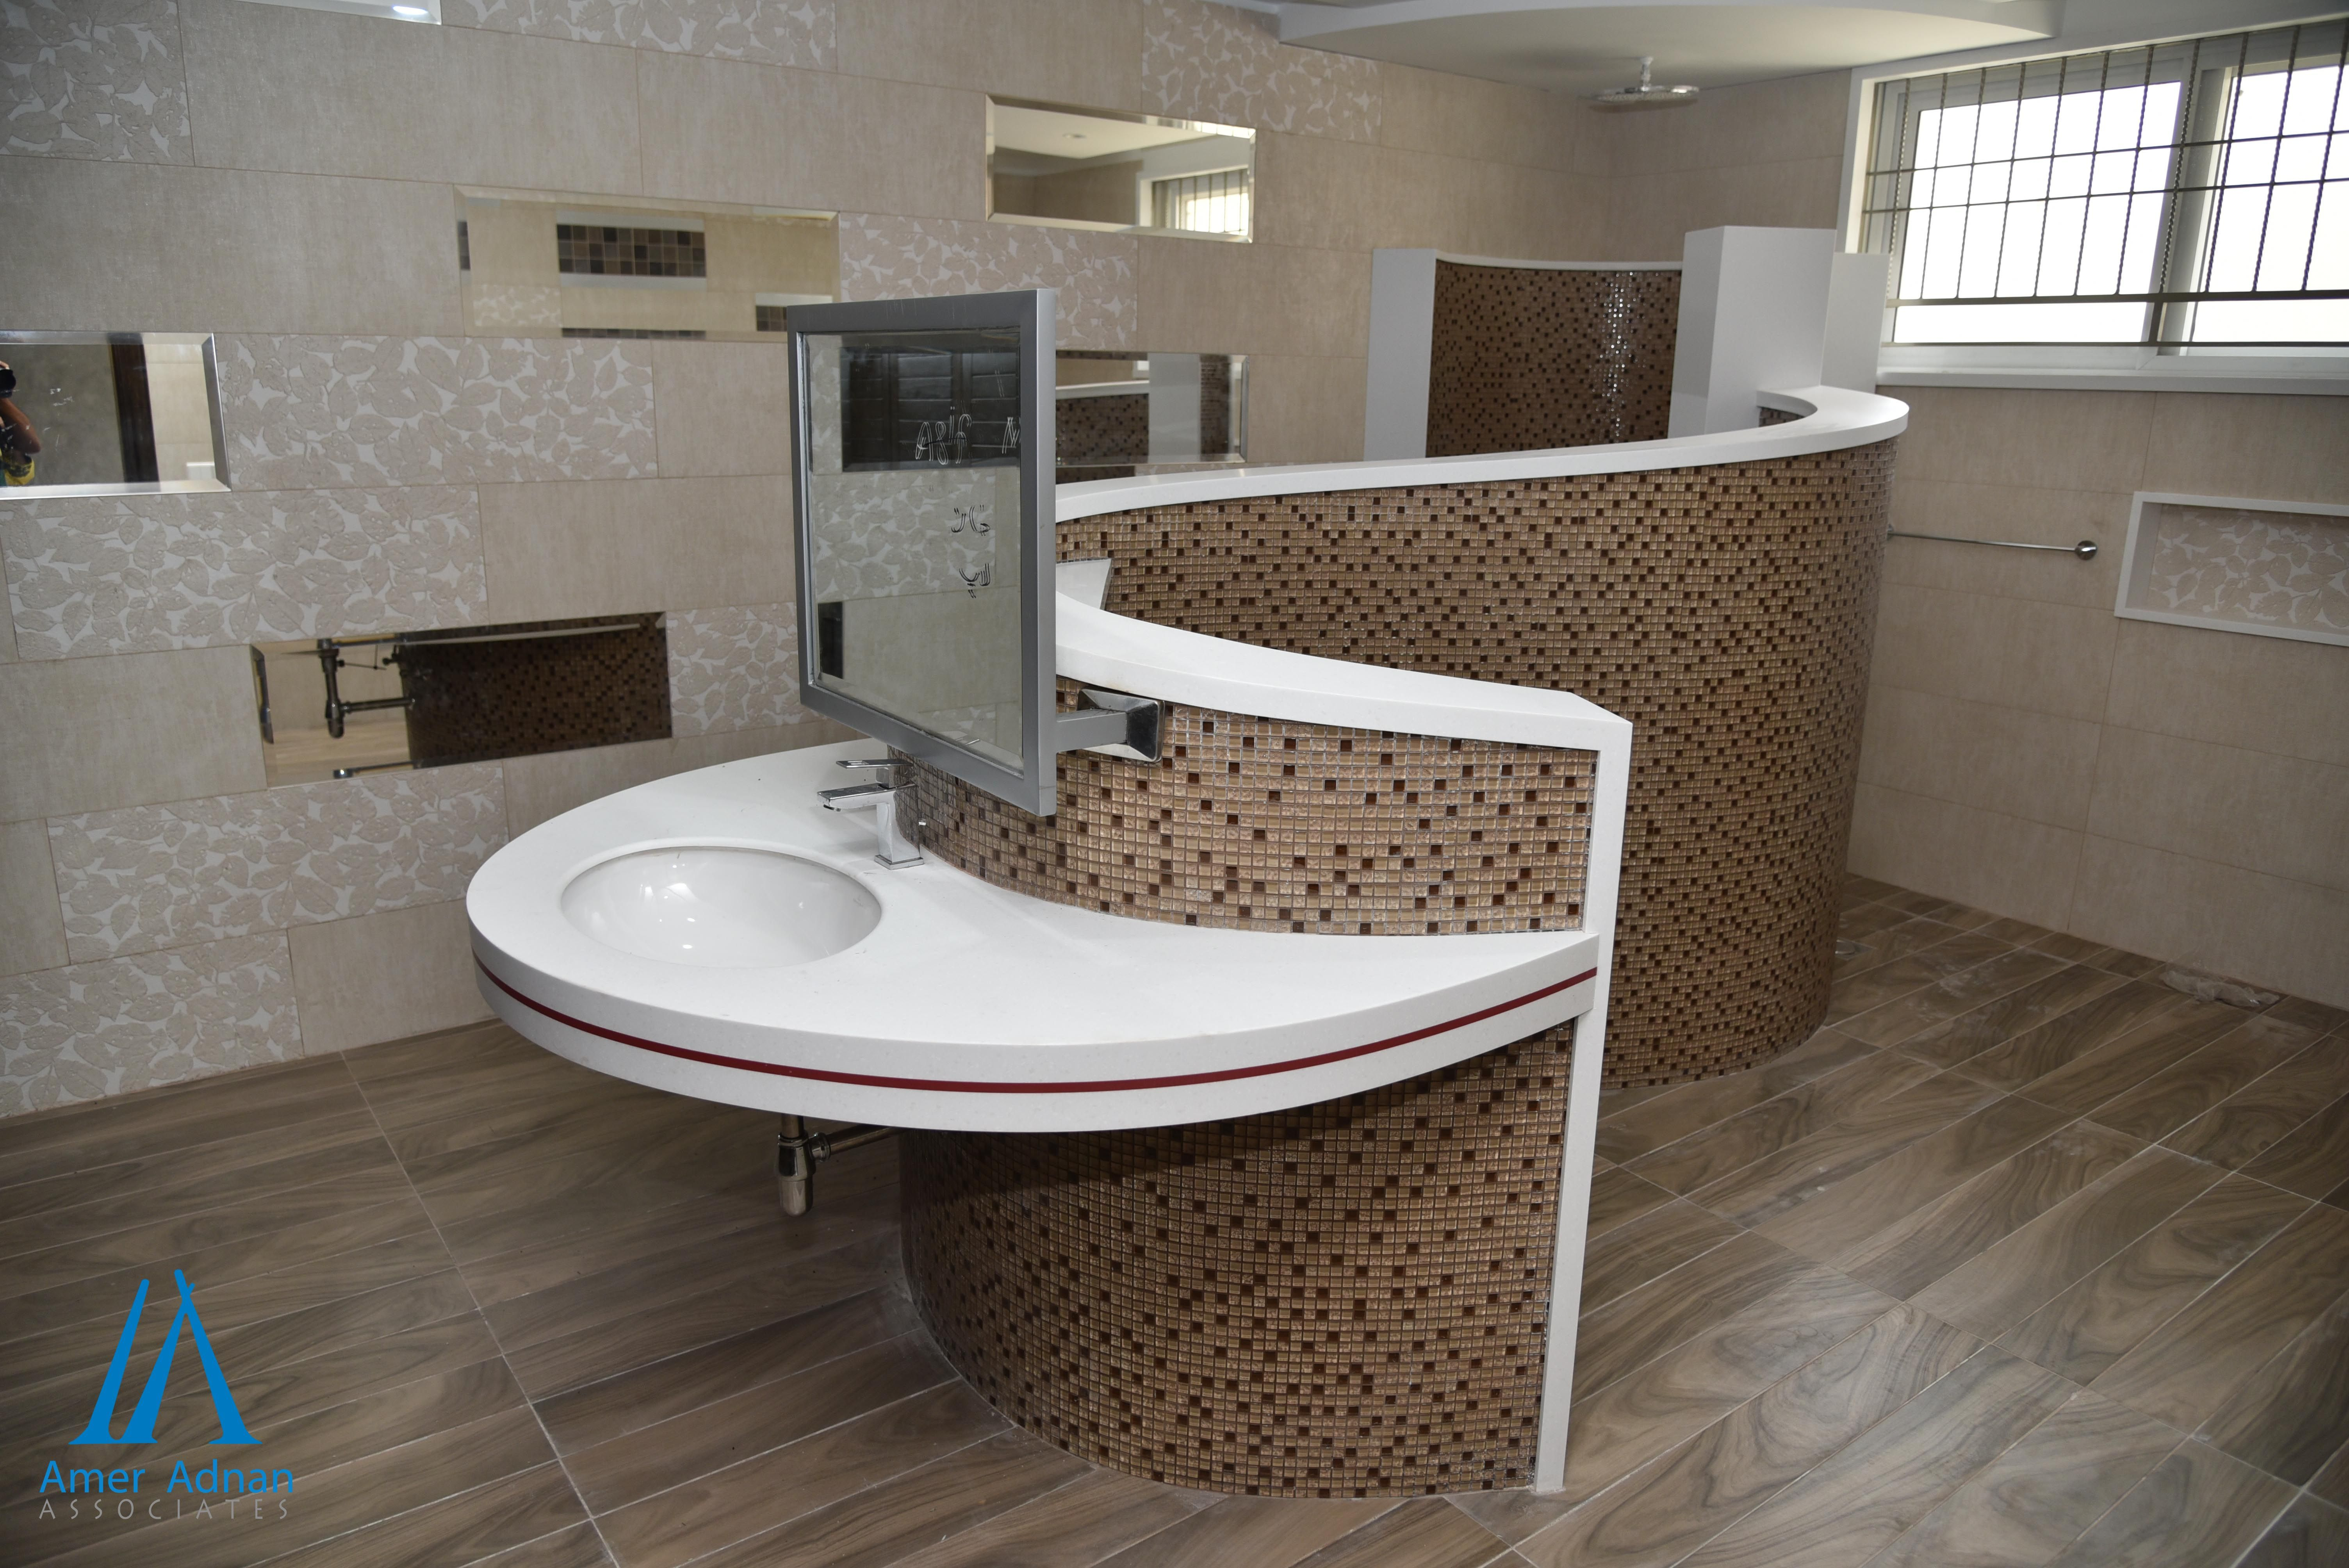 Want To Renovate Your Old Bathroom Into A Modern One Call 0423 6655262 Or Visit Www Bathroom Interior Design Interior Design And Construction Bathroom Design